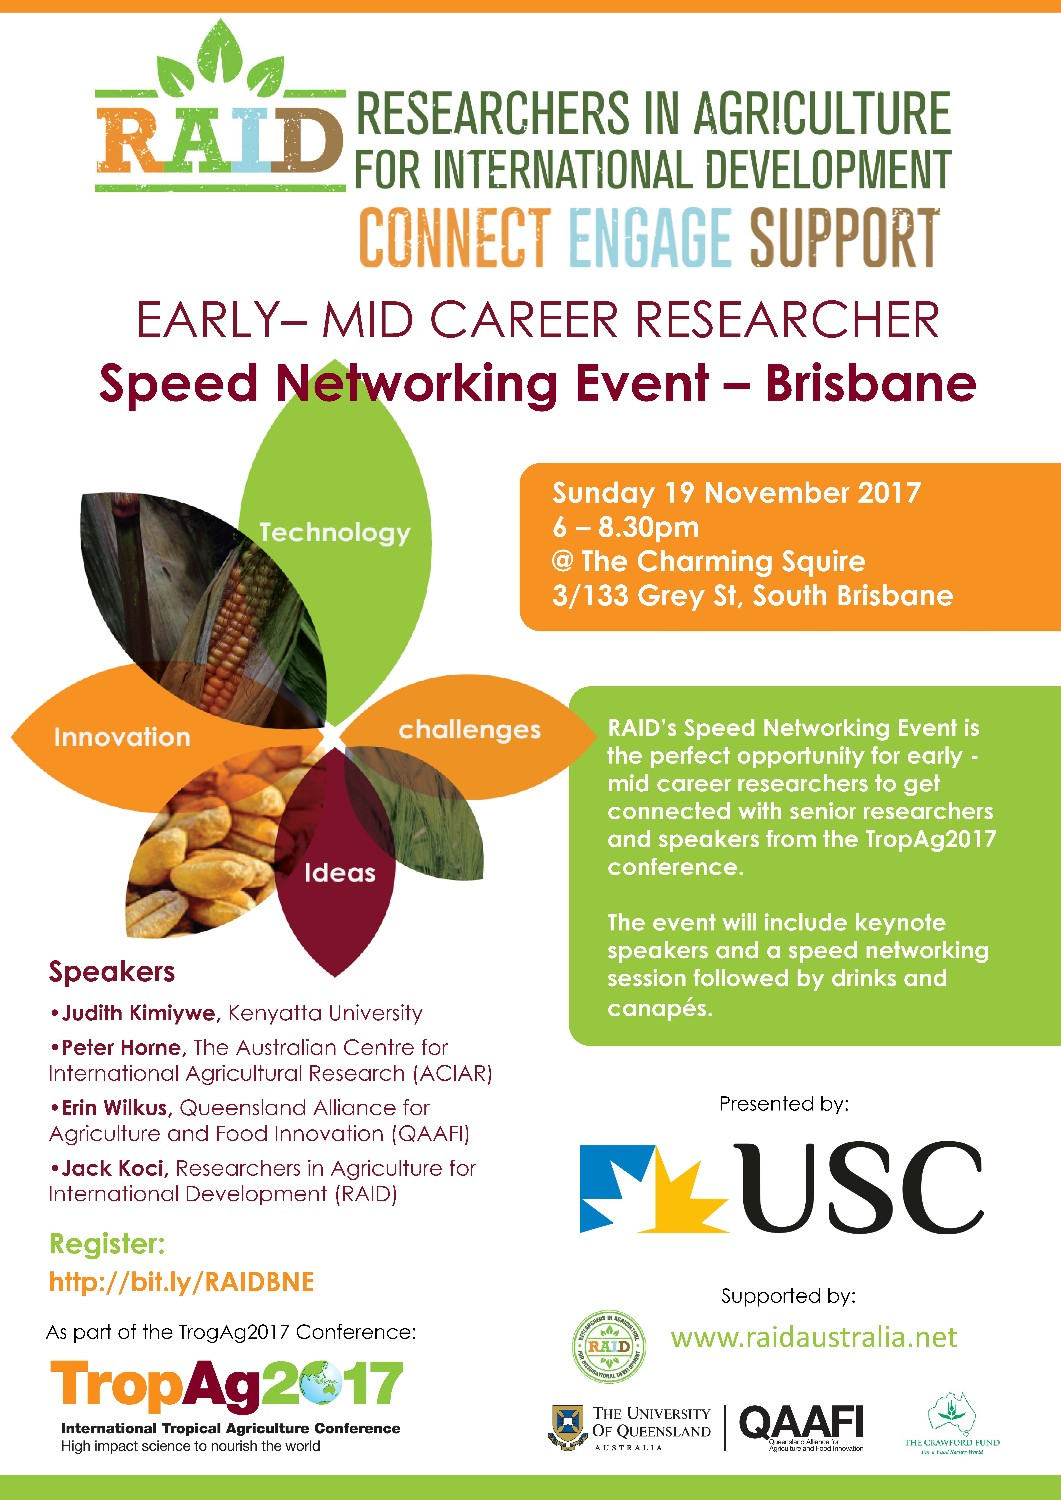 Speed networking event – Brisbane (Sun 19th Nov)